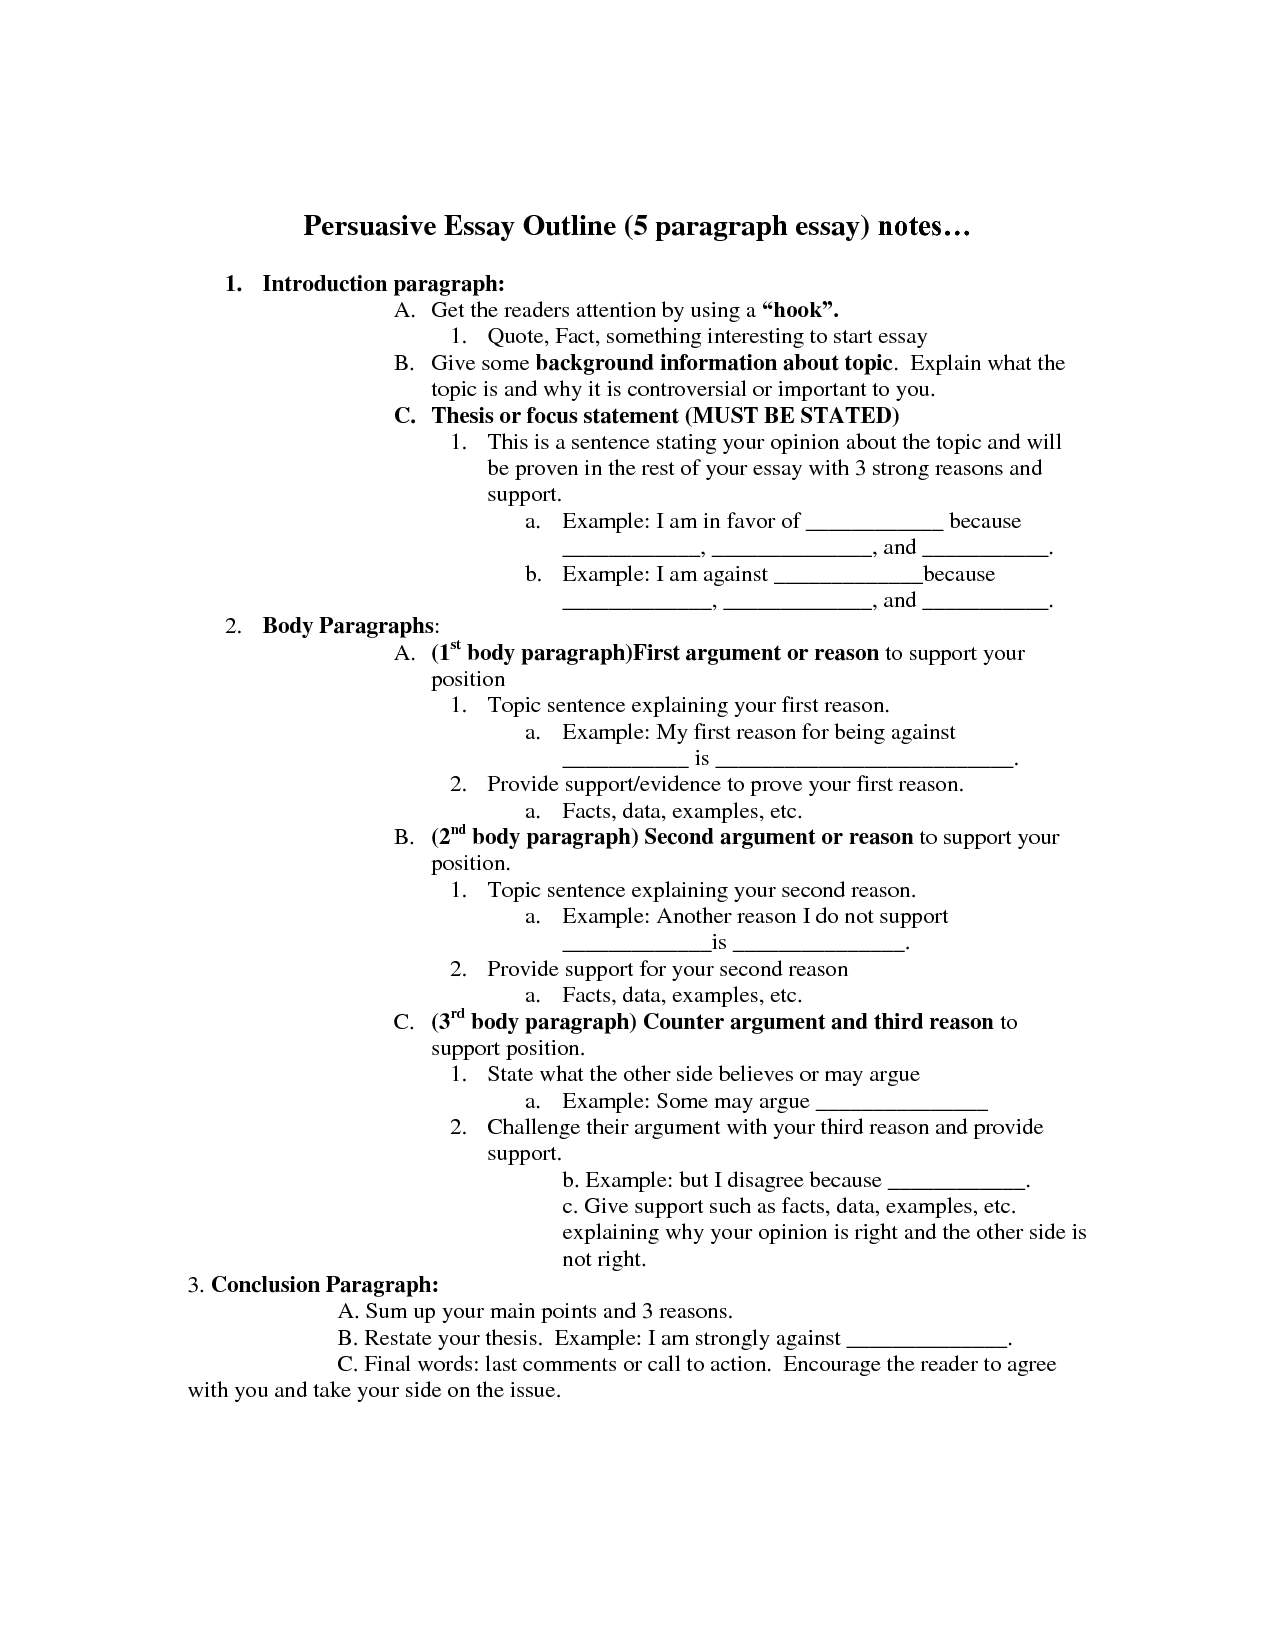 006 Persuasive Essay Outline Unbelievable Worksheet Paper Examples Template 5th Grade Full